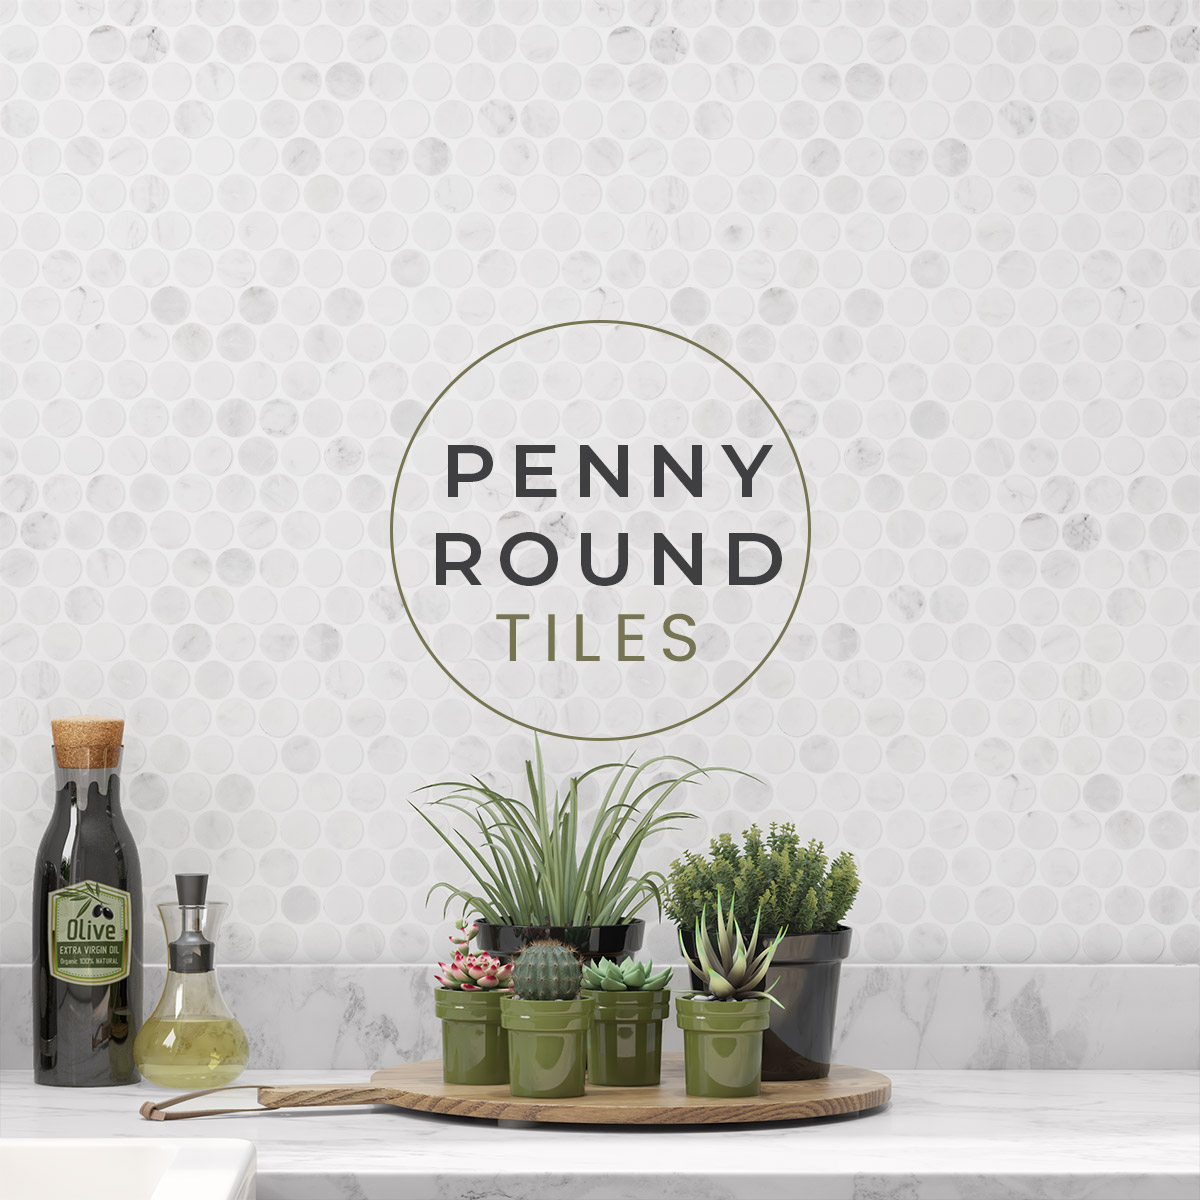 Penny Round tiles